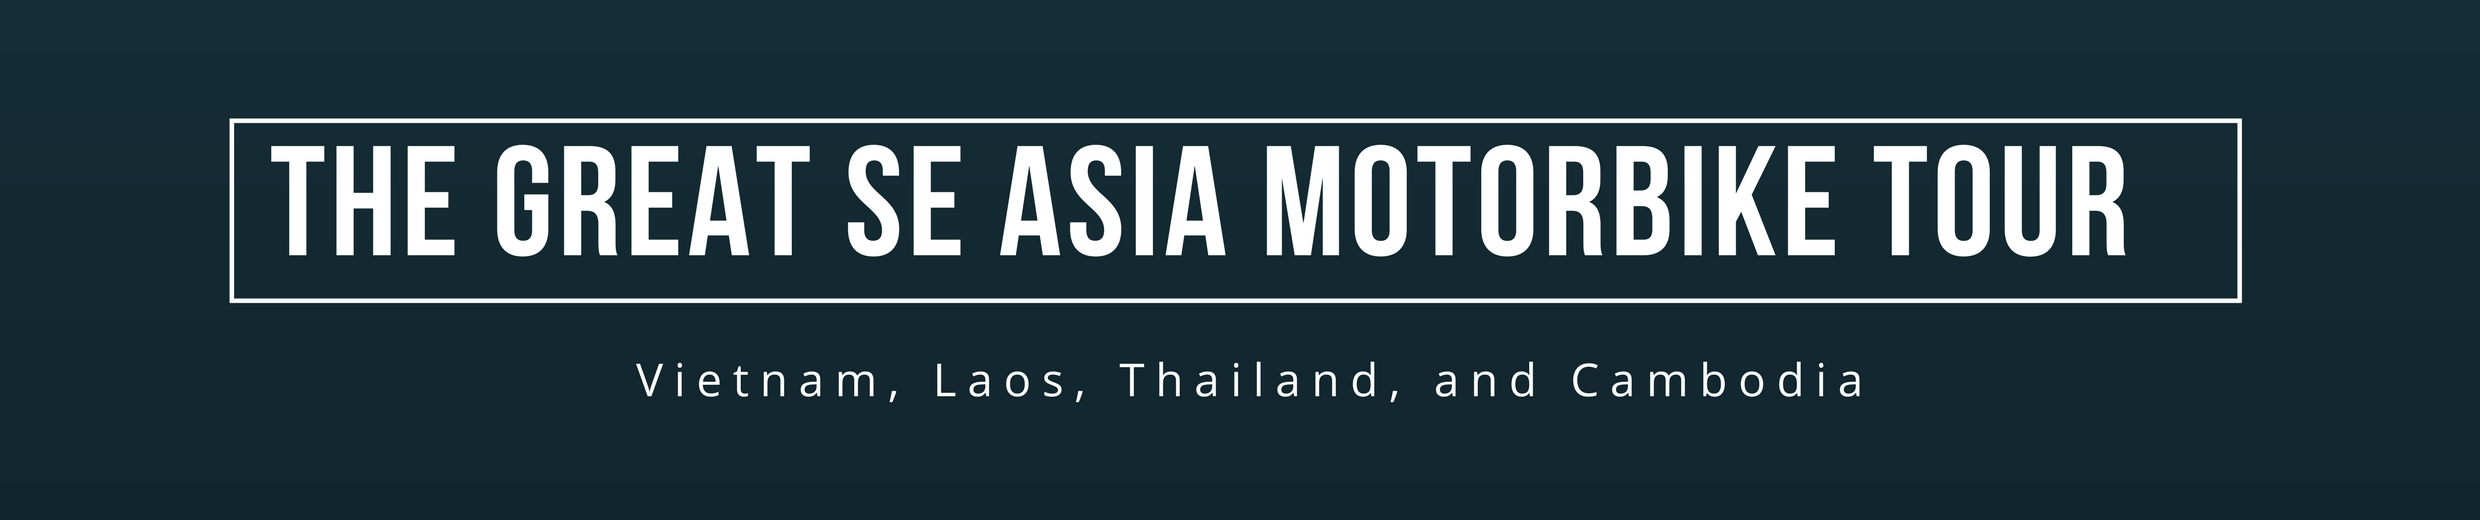 The Great SE Asia Motorbike Tour